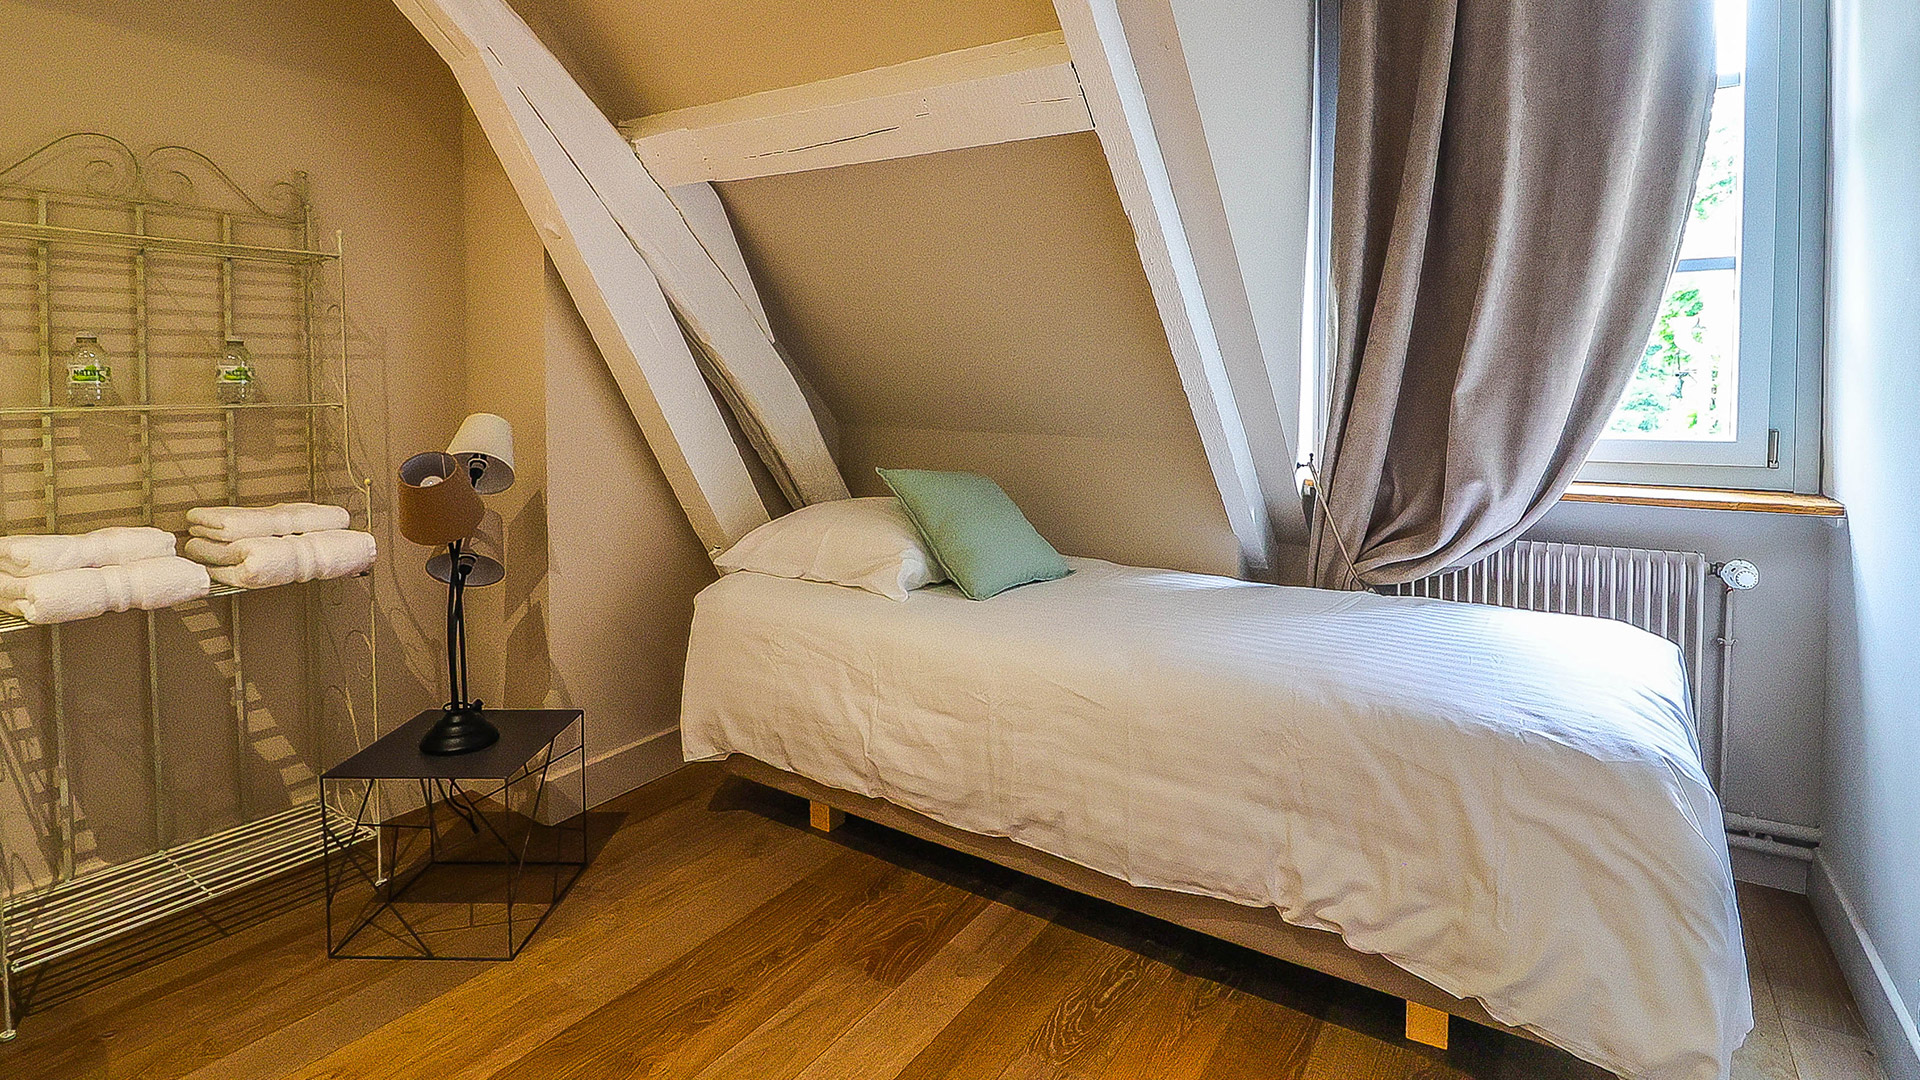 reserver-chambre-hote-compiegne-proche-aisne-picardie-foret-moulin-ortille-domaine